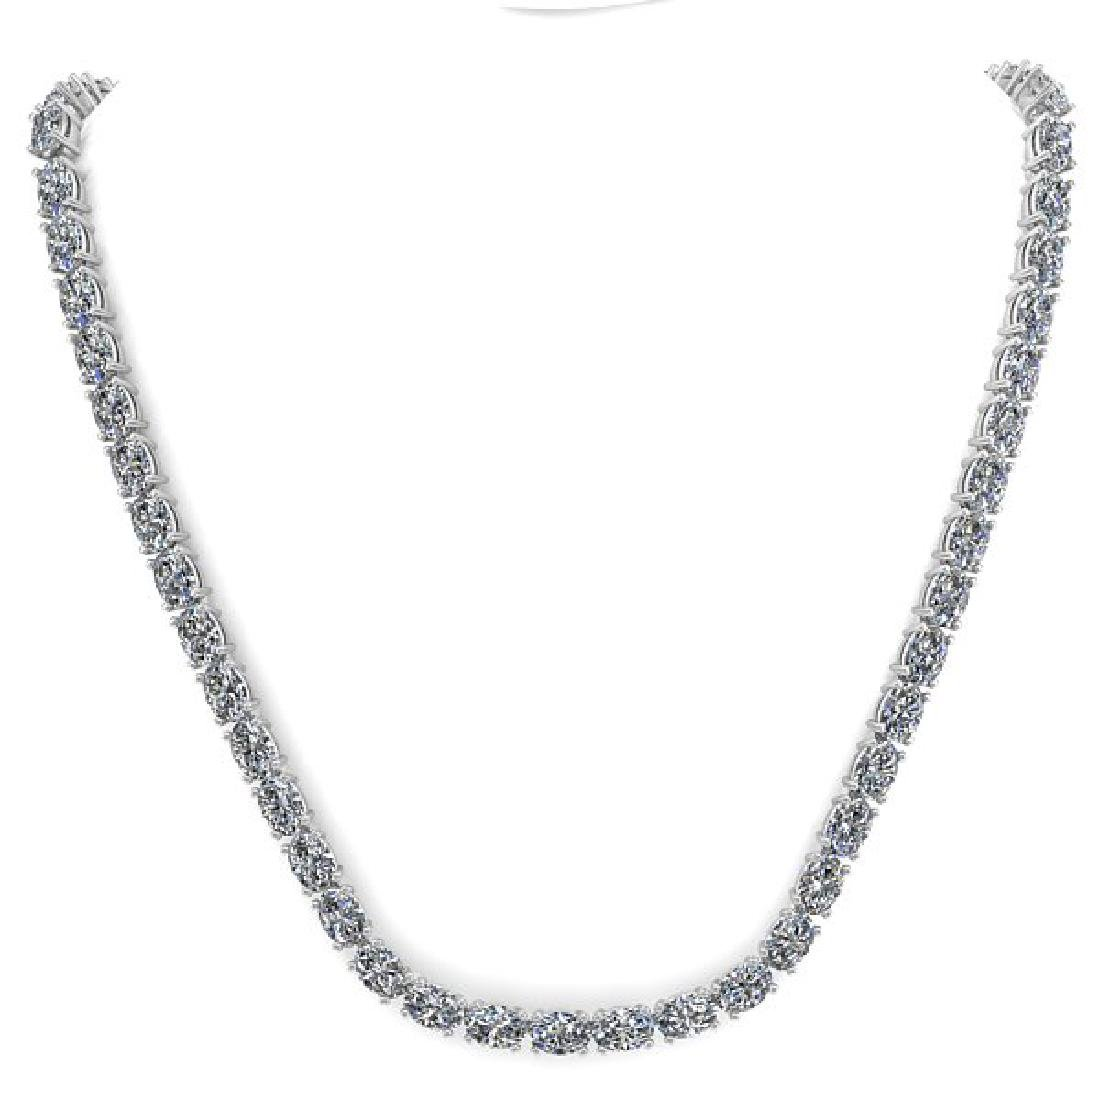 30 CTW Oval Cut Certified SI Diamond Necklace 18K White - 3